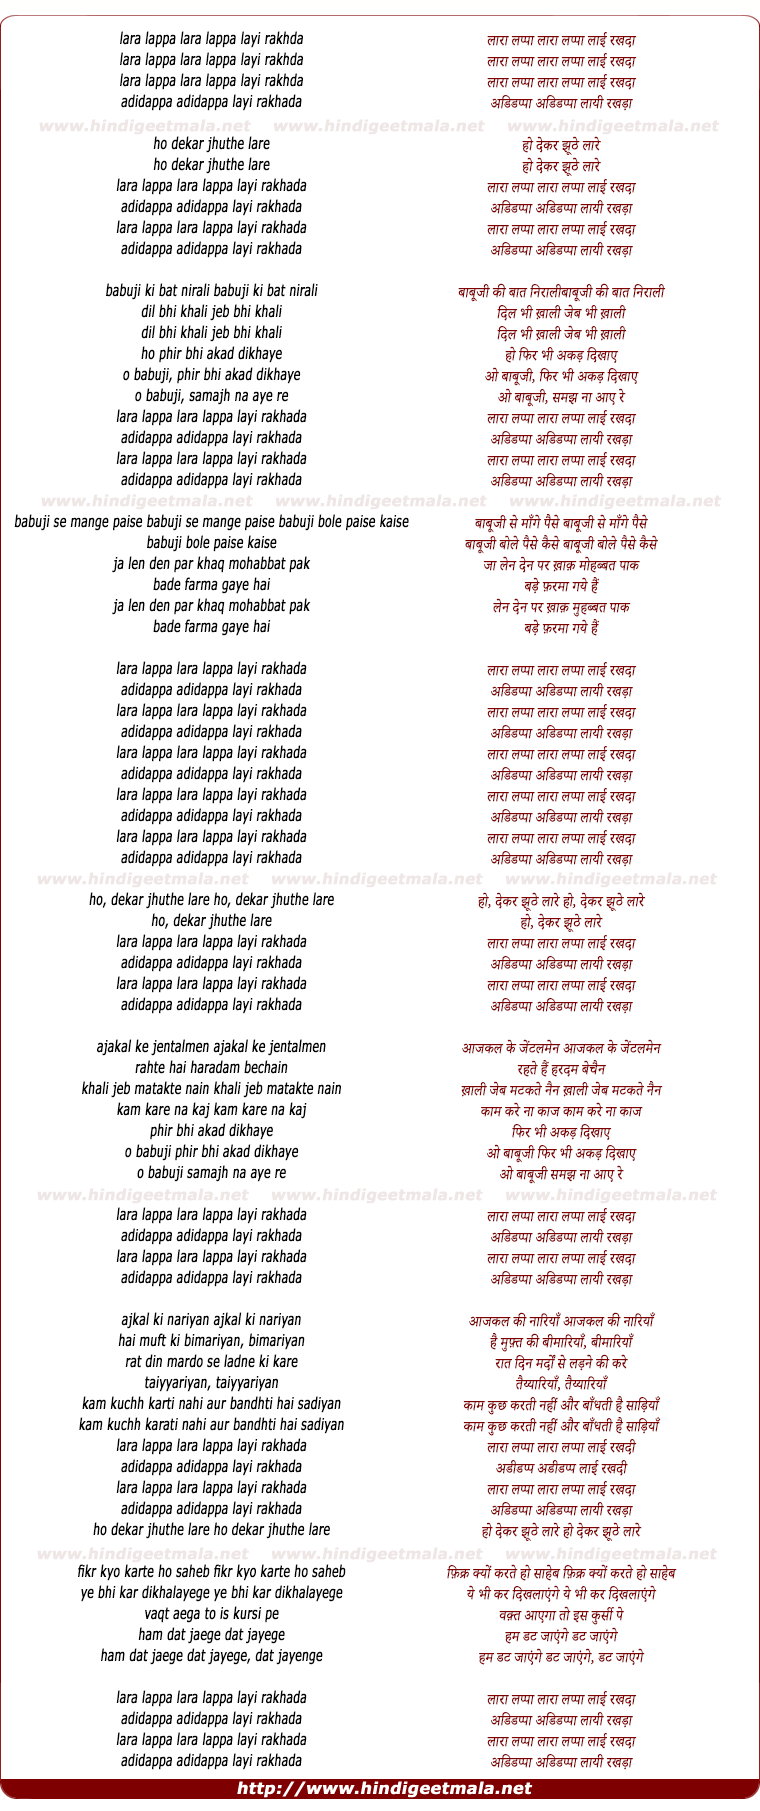 lyrics of song Lara Lappa Lara Lappa Laayi Rakhada